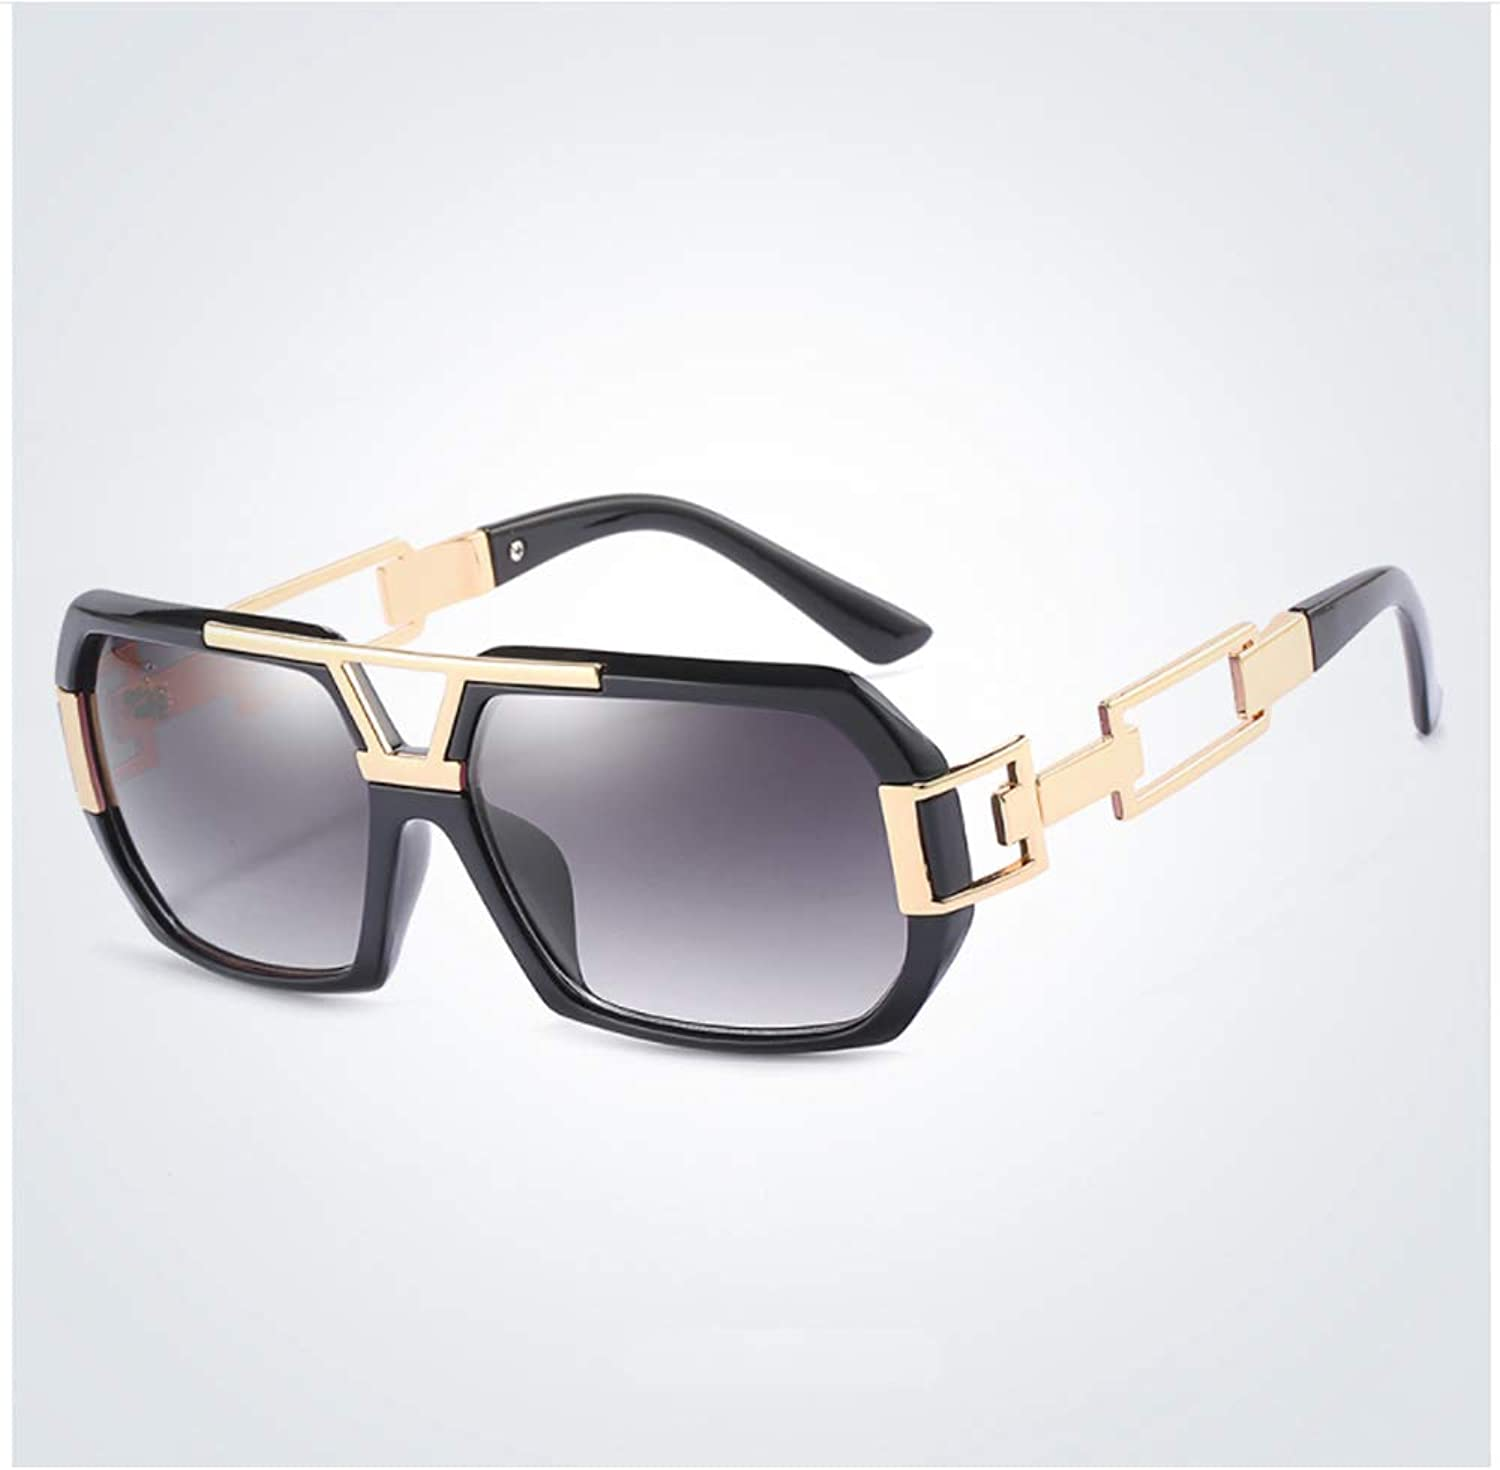 d1d754b5cdb7 Outdoor Sunglasses Made of PC AntiUV 400 Suitable for Driving Sports ...